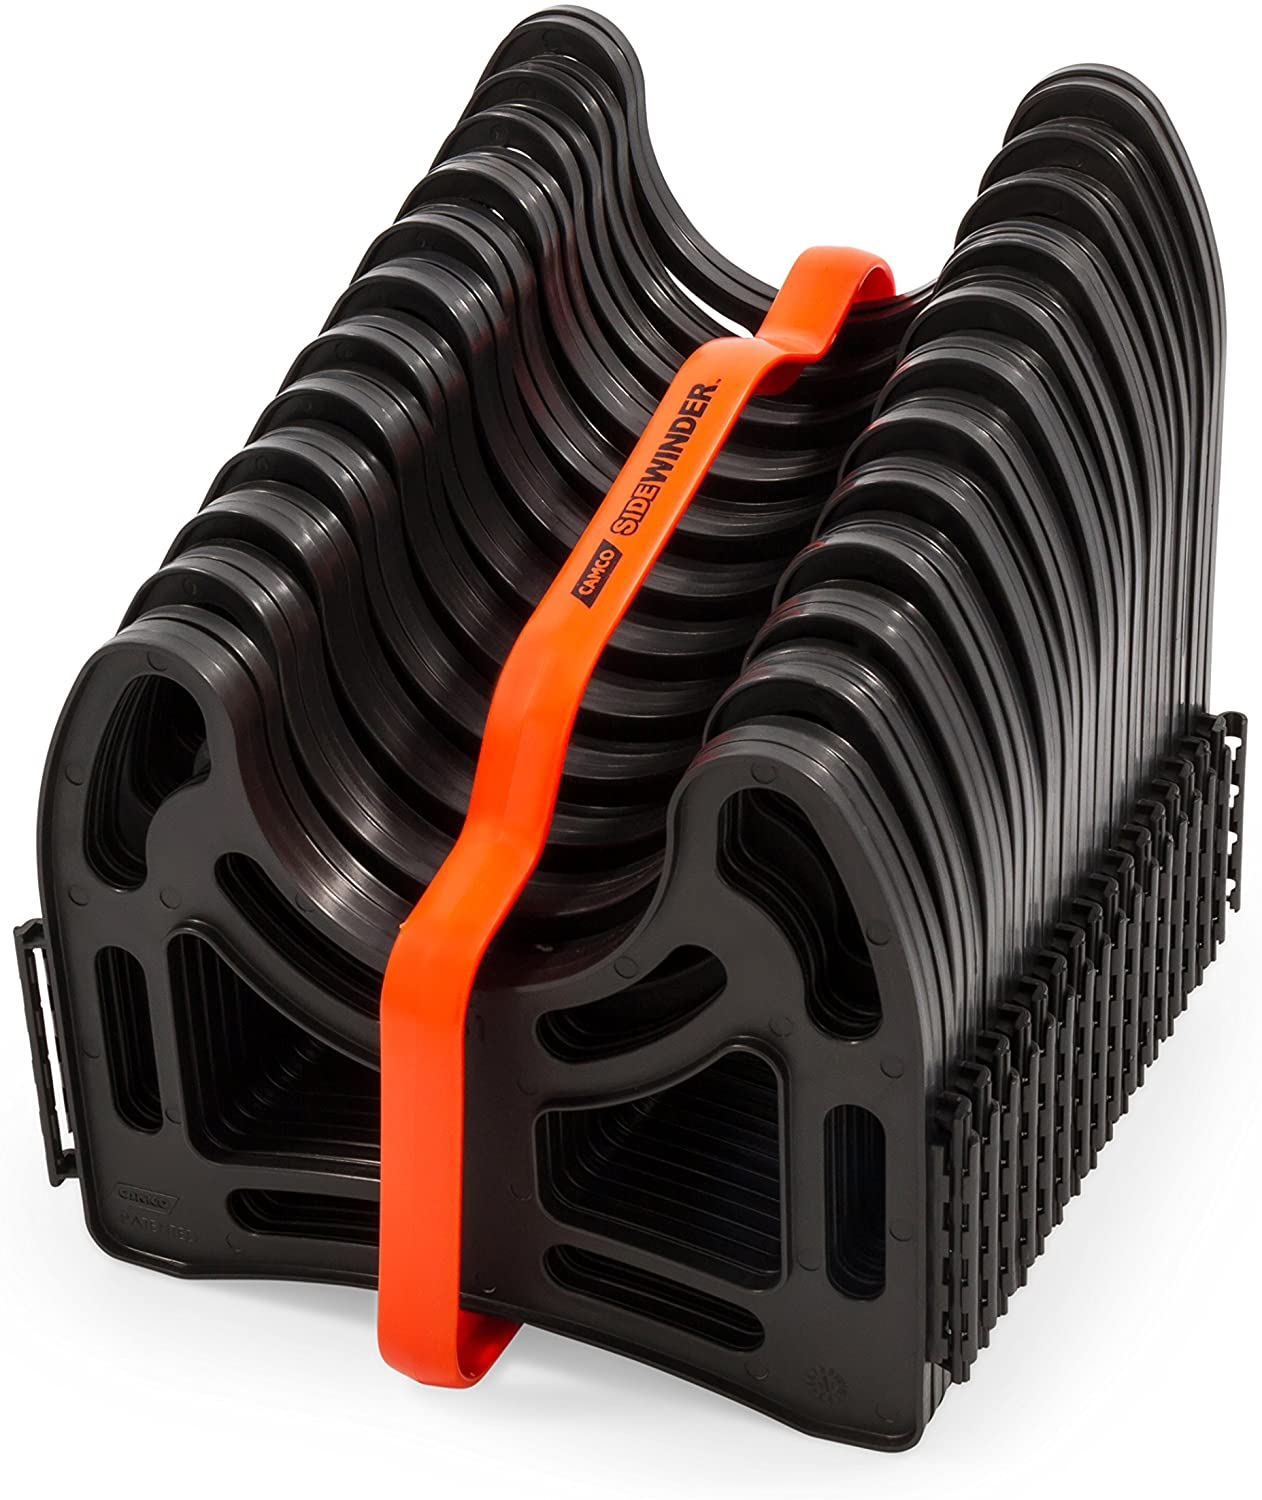 camco rv sewer hose support review